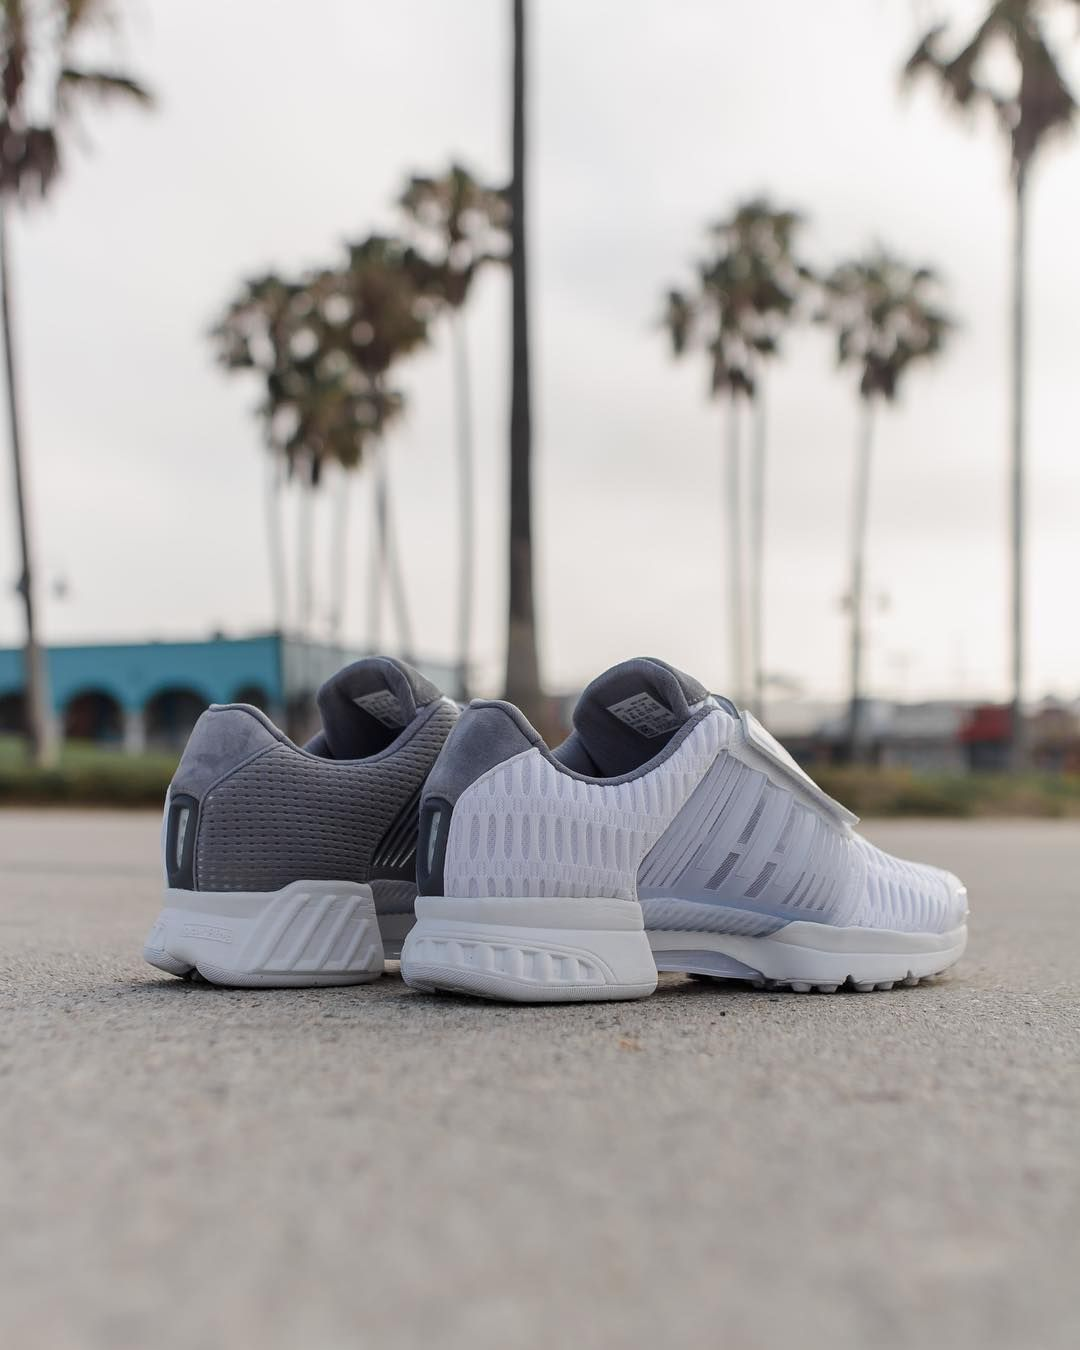 low priced 28ef2 8d5df We celebrate the city of Los Angeles with an adidas Originals Flagship  Store exclusive  CLIMACOOL